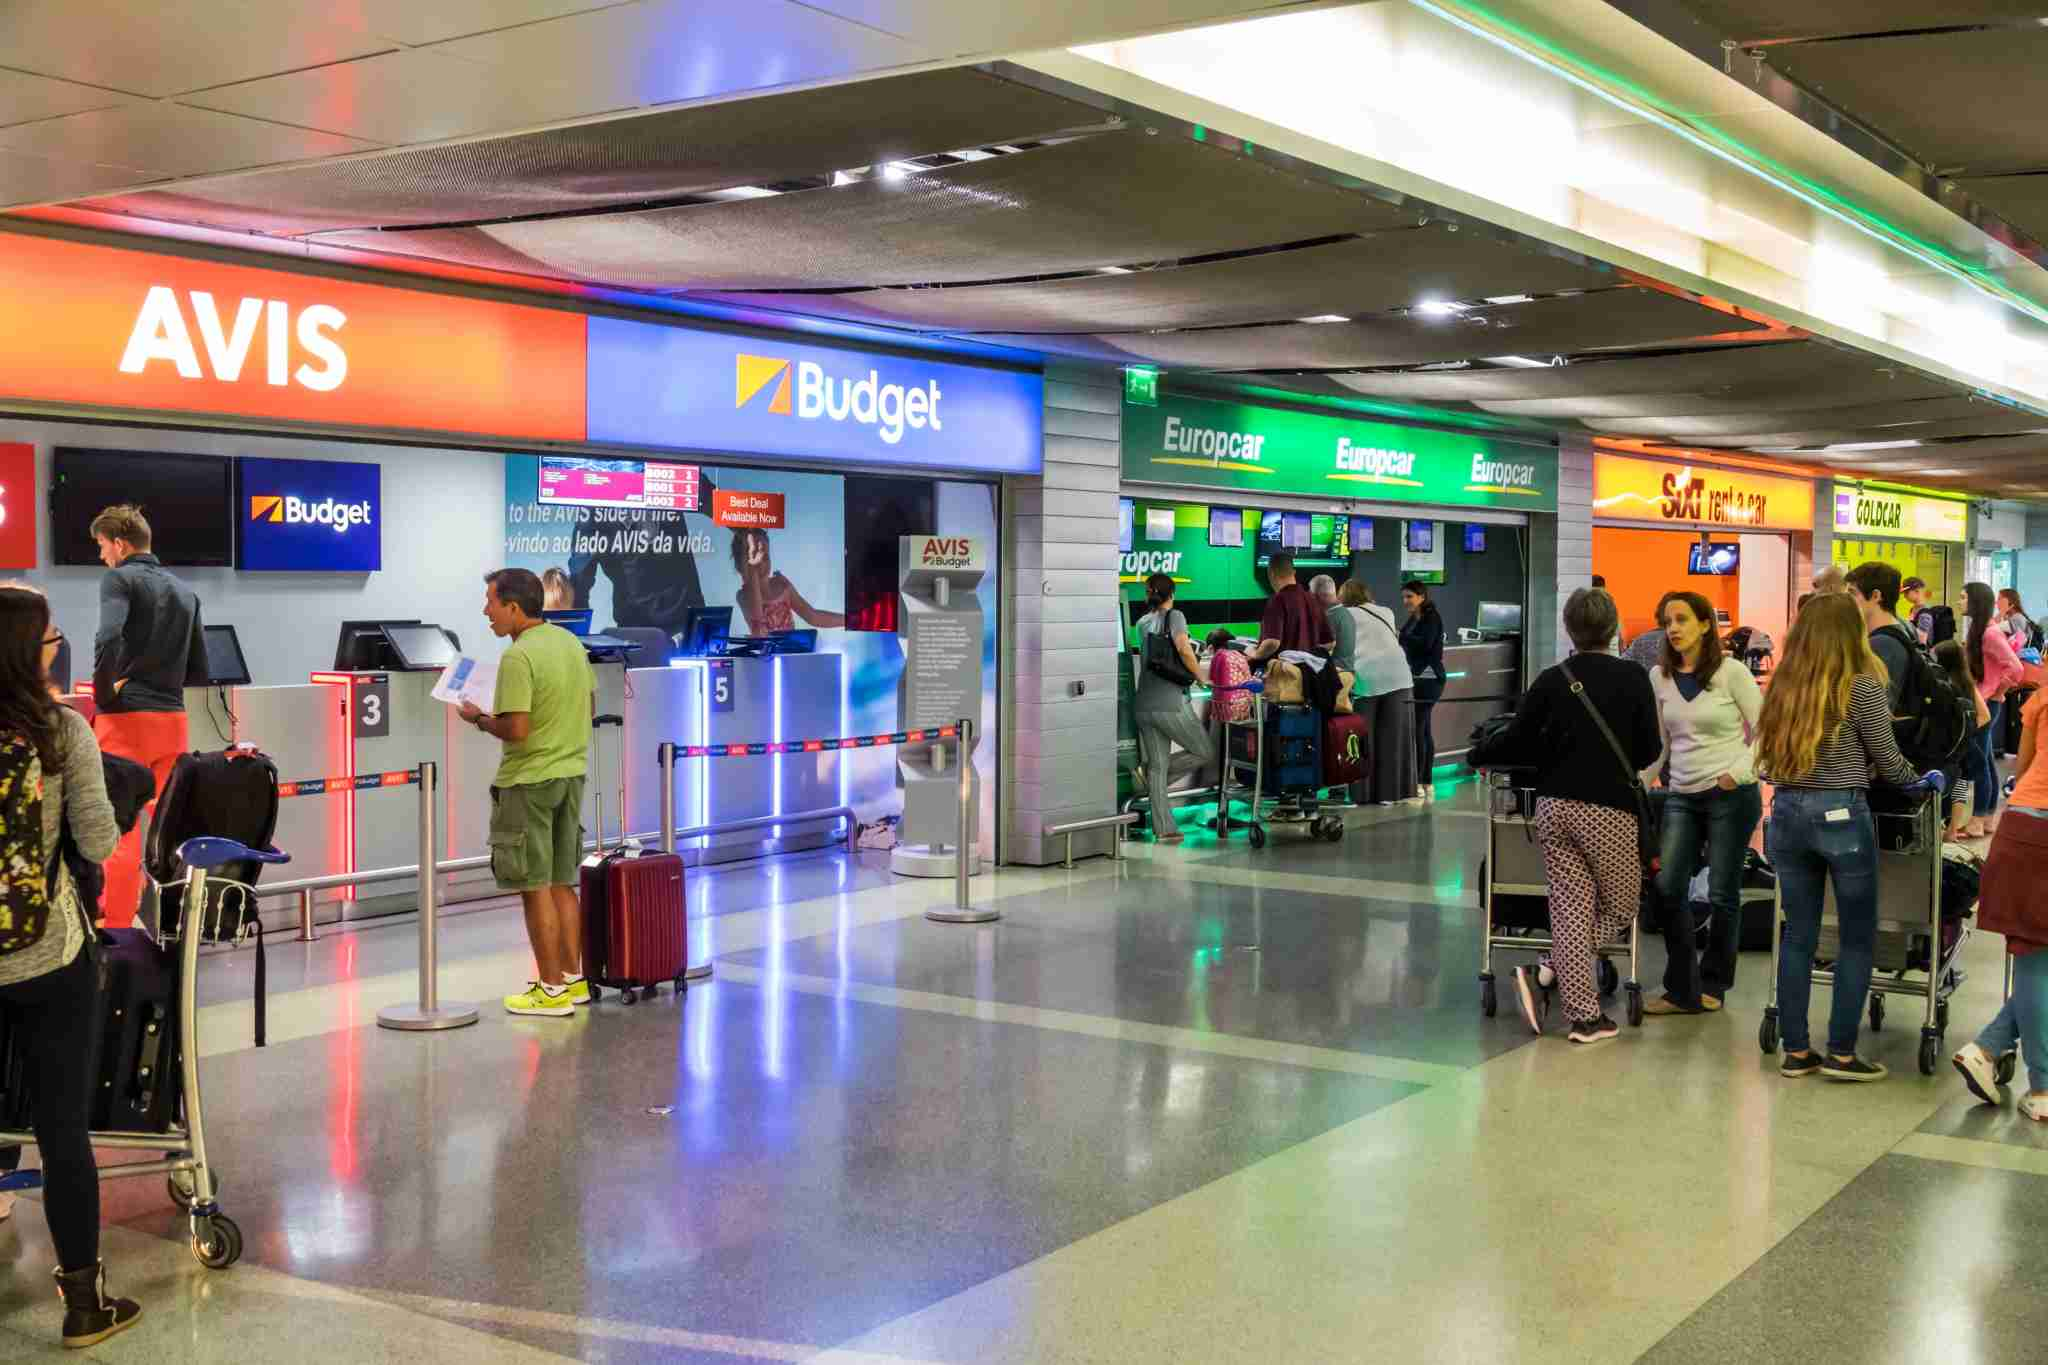 Portugal, Lisbon, Humberto Delgado Airport, competing car rental counters, Avis, Budget, Europcar. (Photo by: Jeffrey Greenberg/UIG via Getty Images)